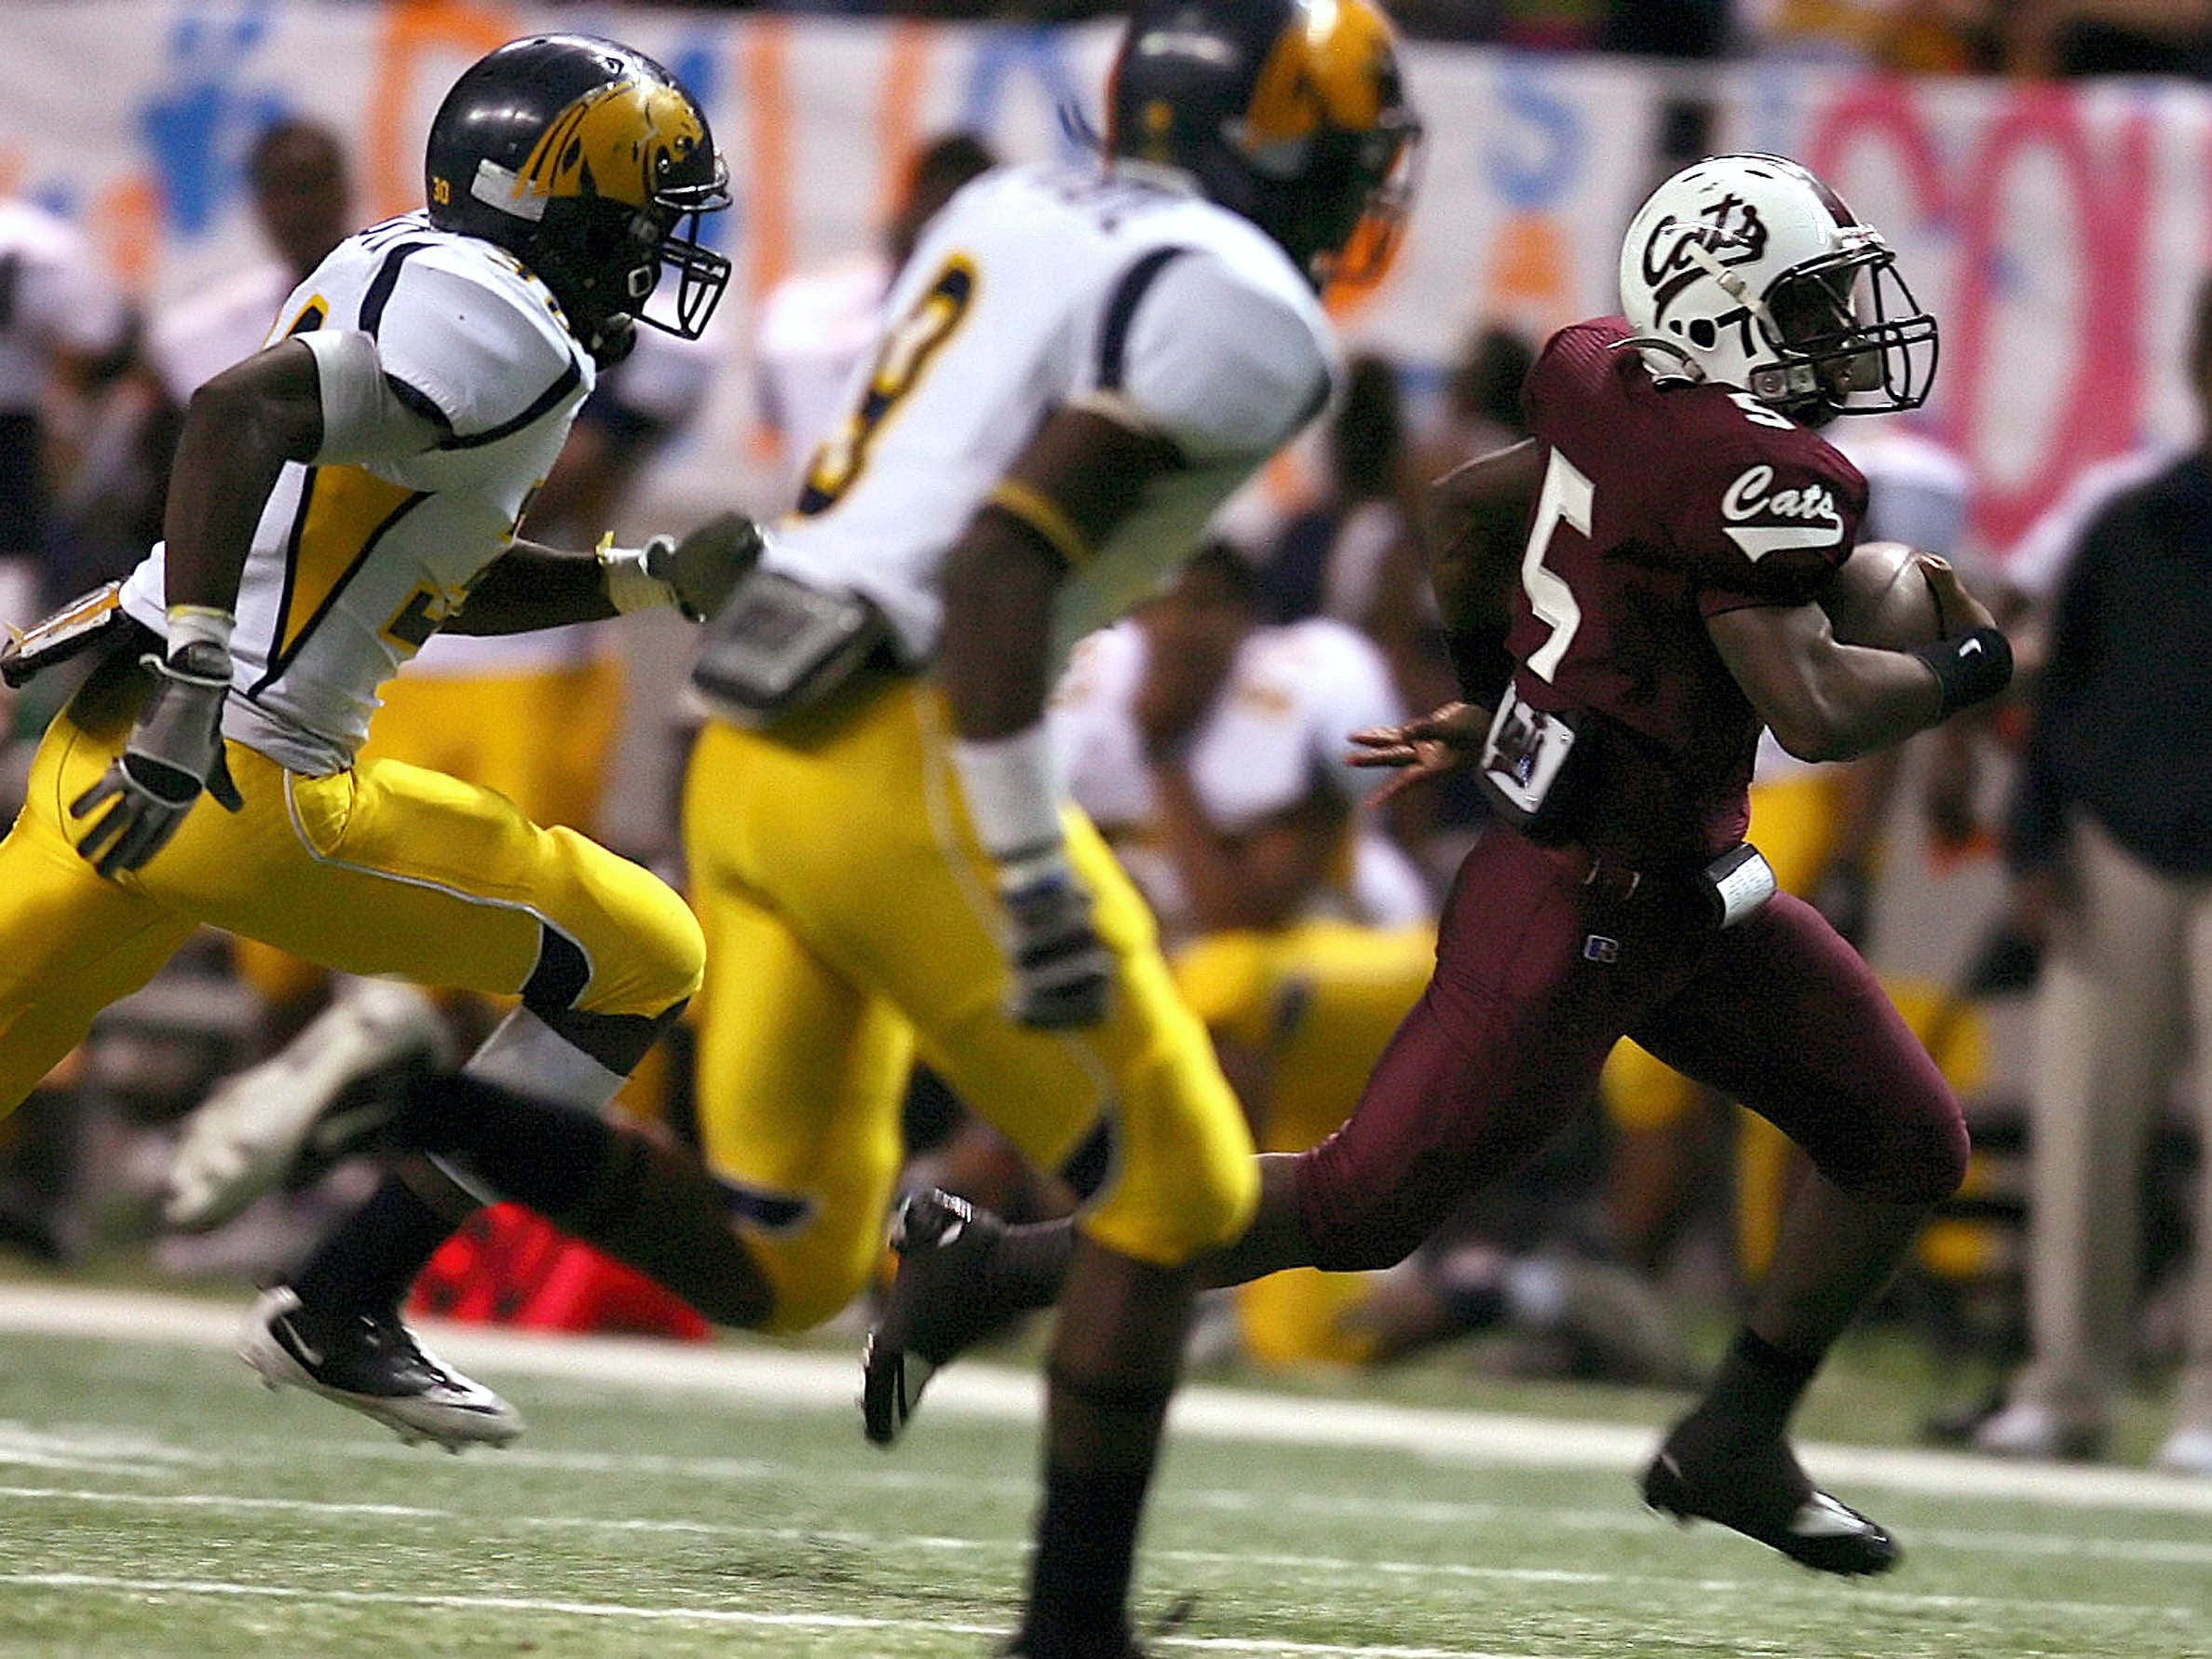 TODD YATES/ CALLER-TIMES